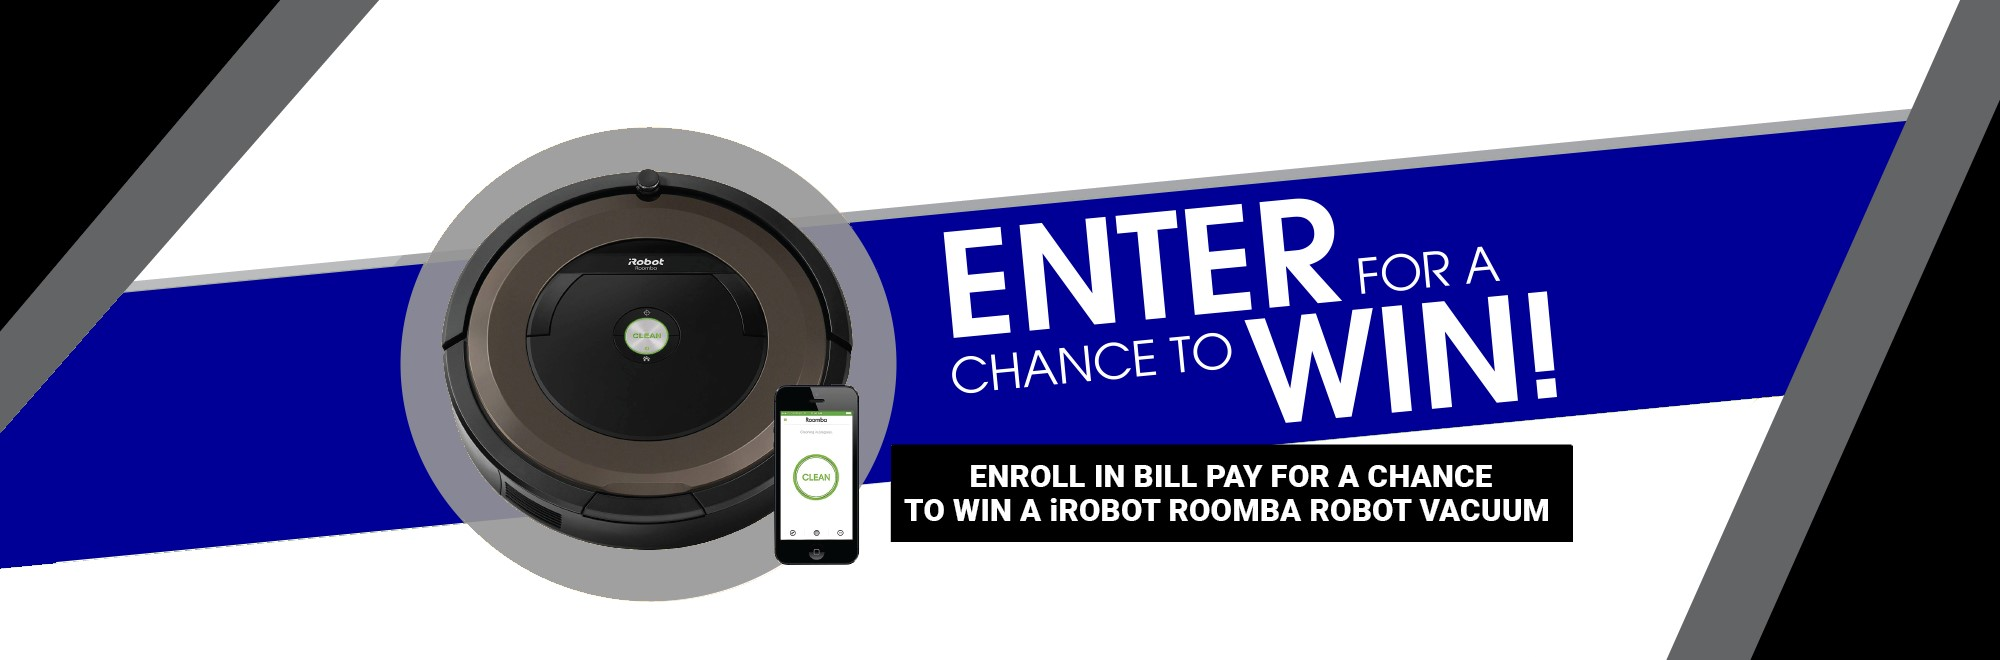 Enroll in Bill Pay and enter for a chance to win a iRobot Roomba Robot Vacuum